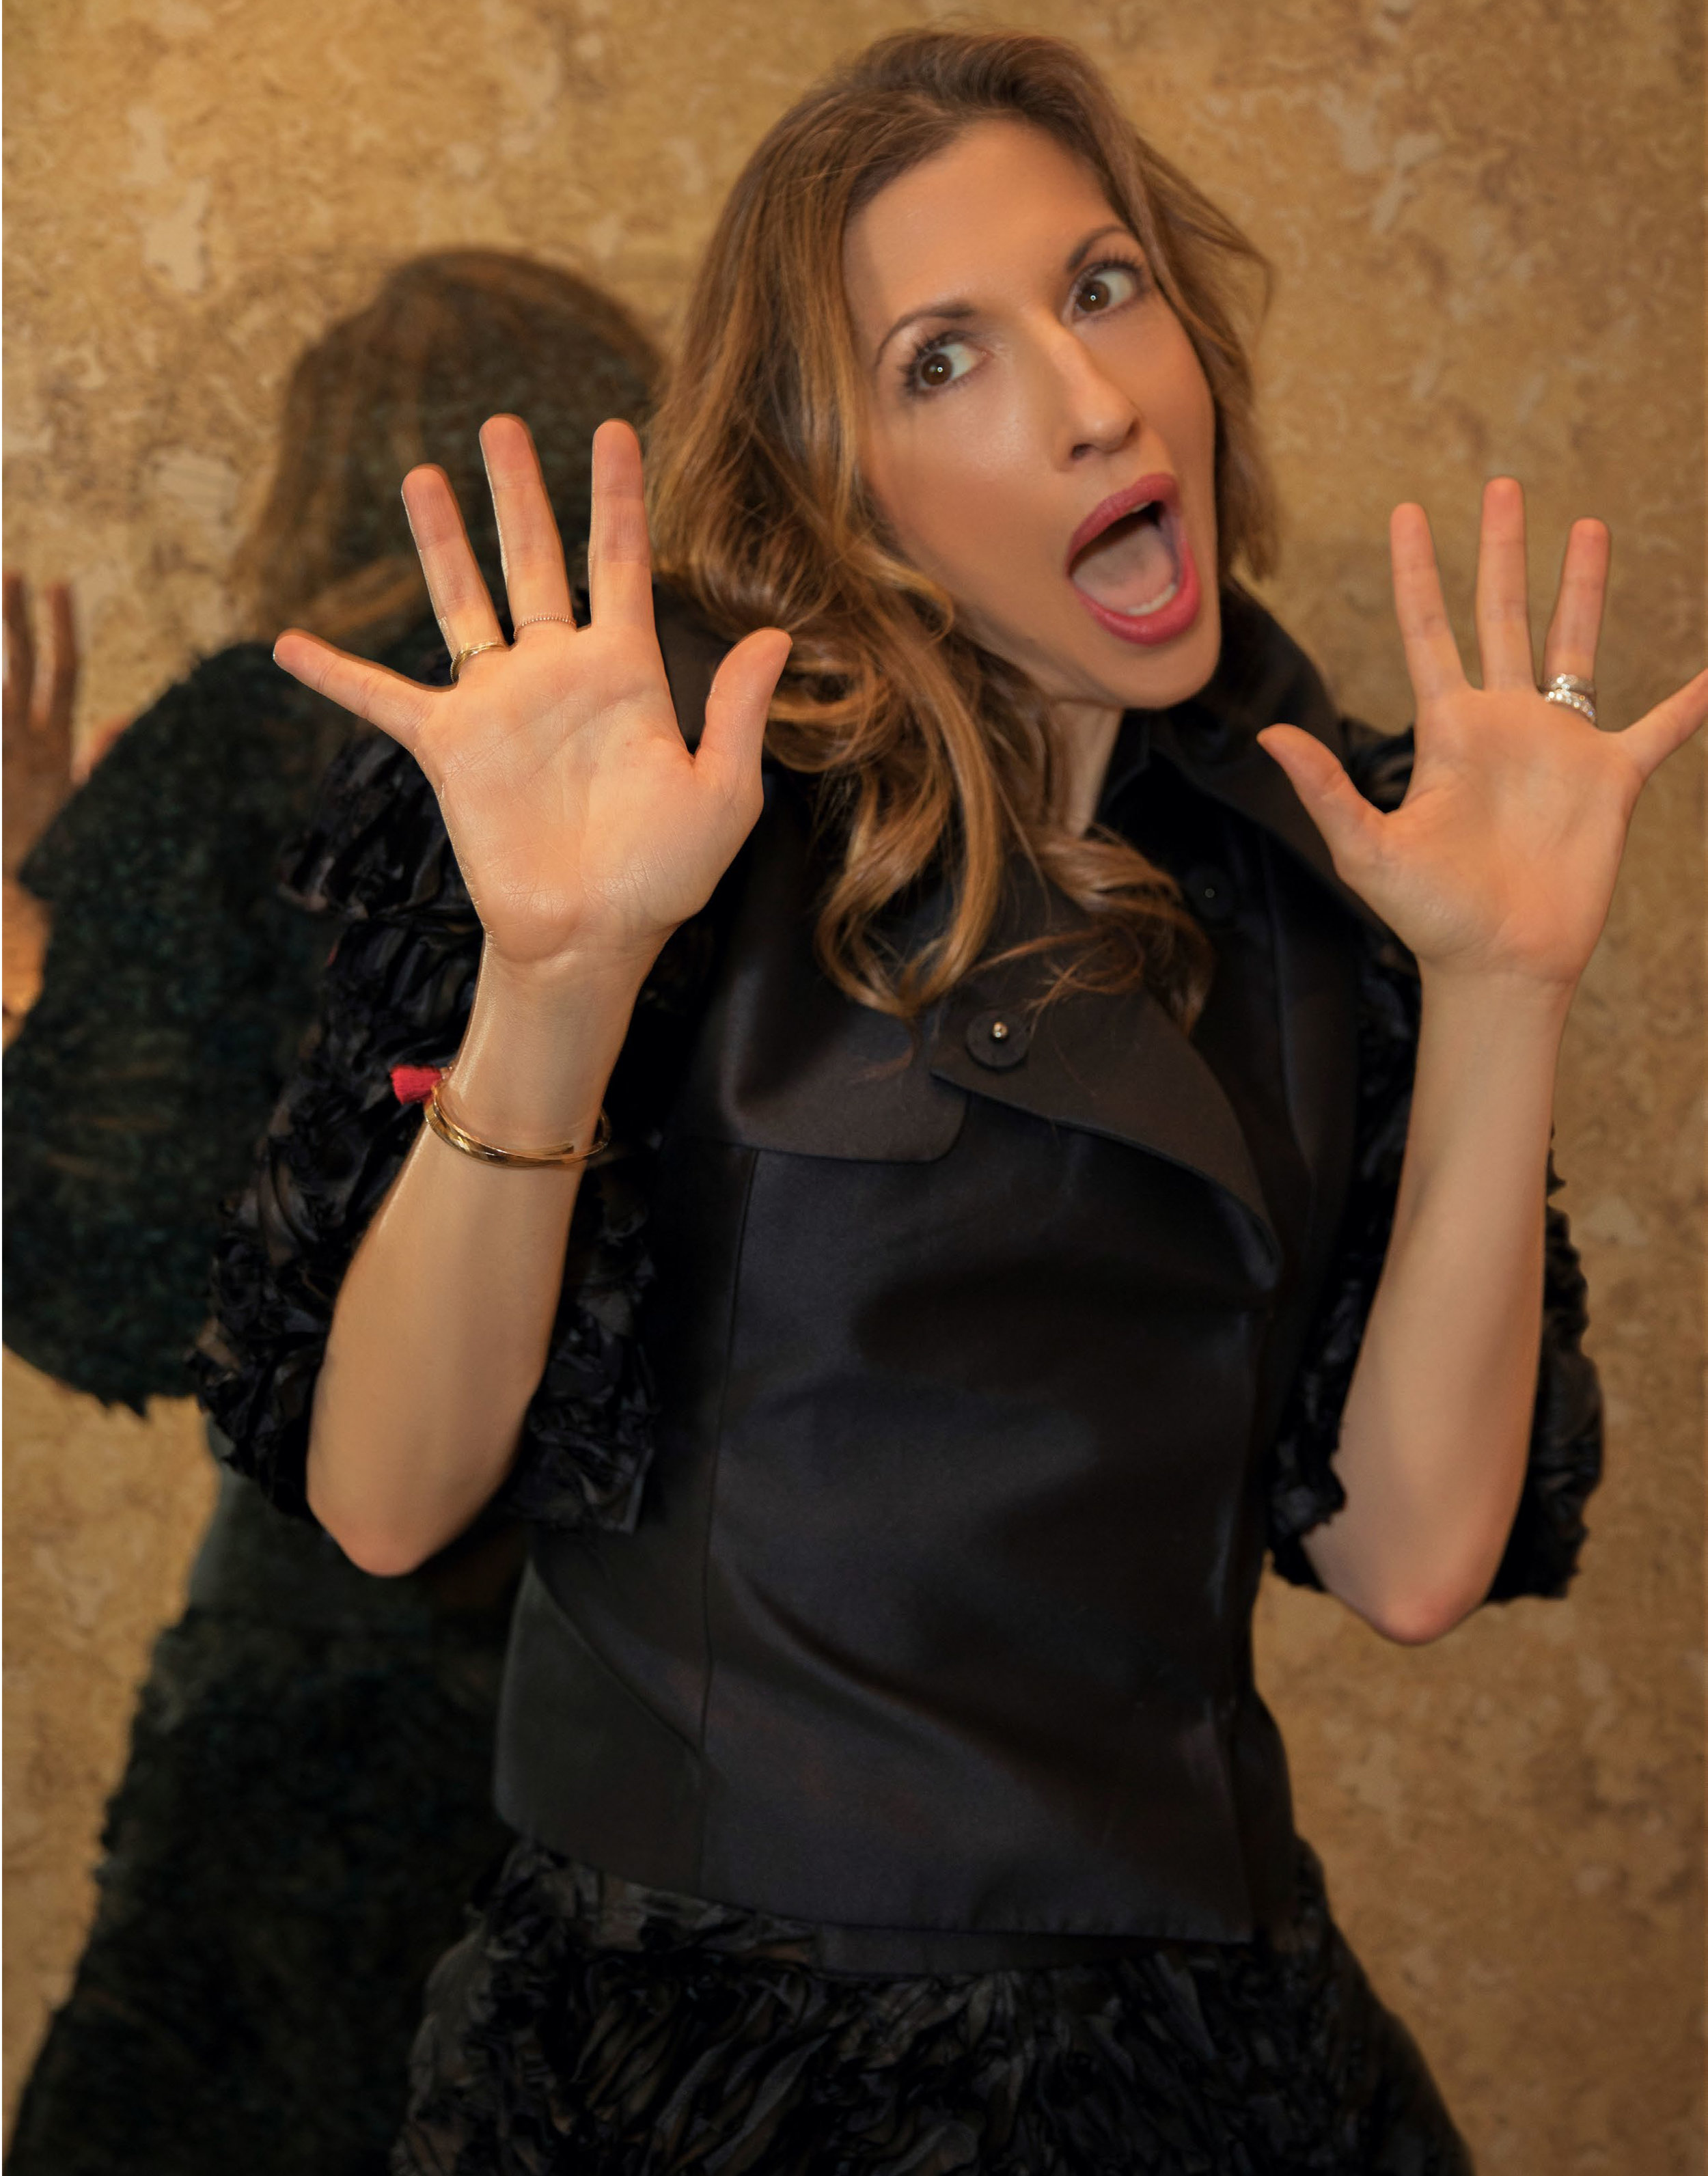 AM JUN OUR FEMPIRE ALYSIA REINER-7.jpg